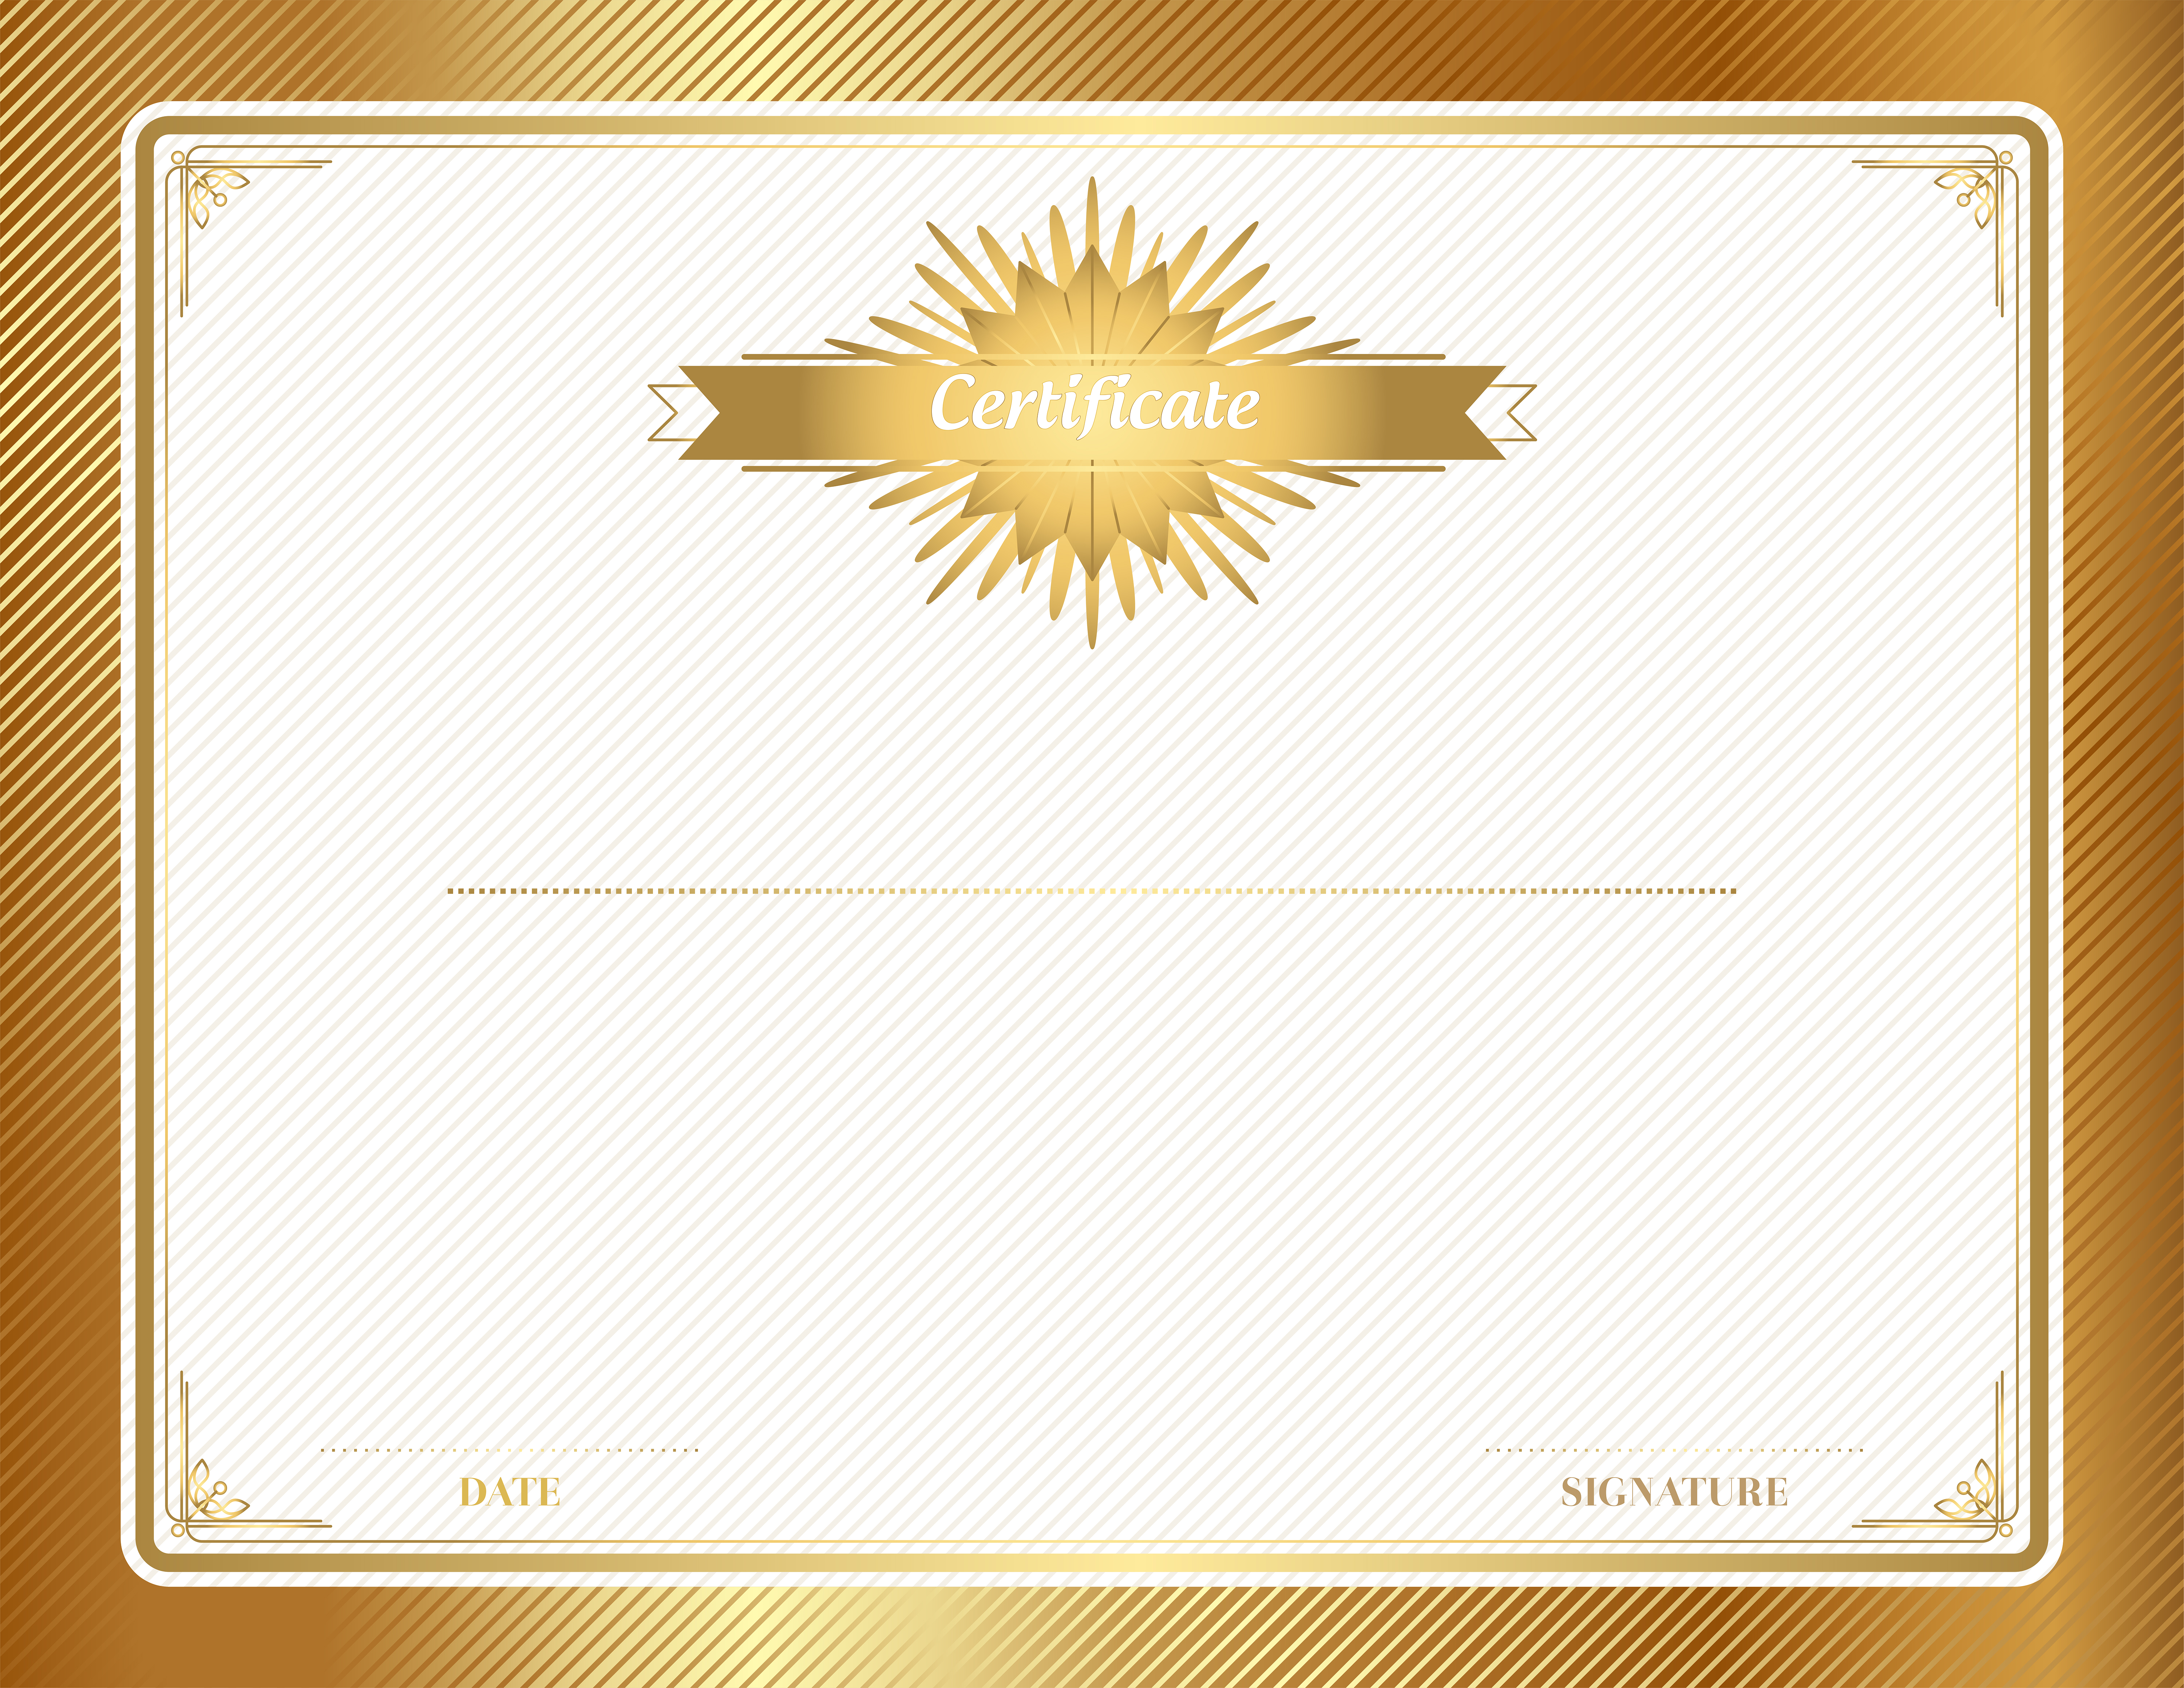 Free clipart for certificates. Gold certificate template clip